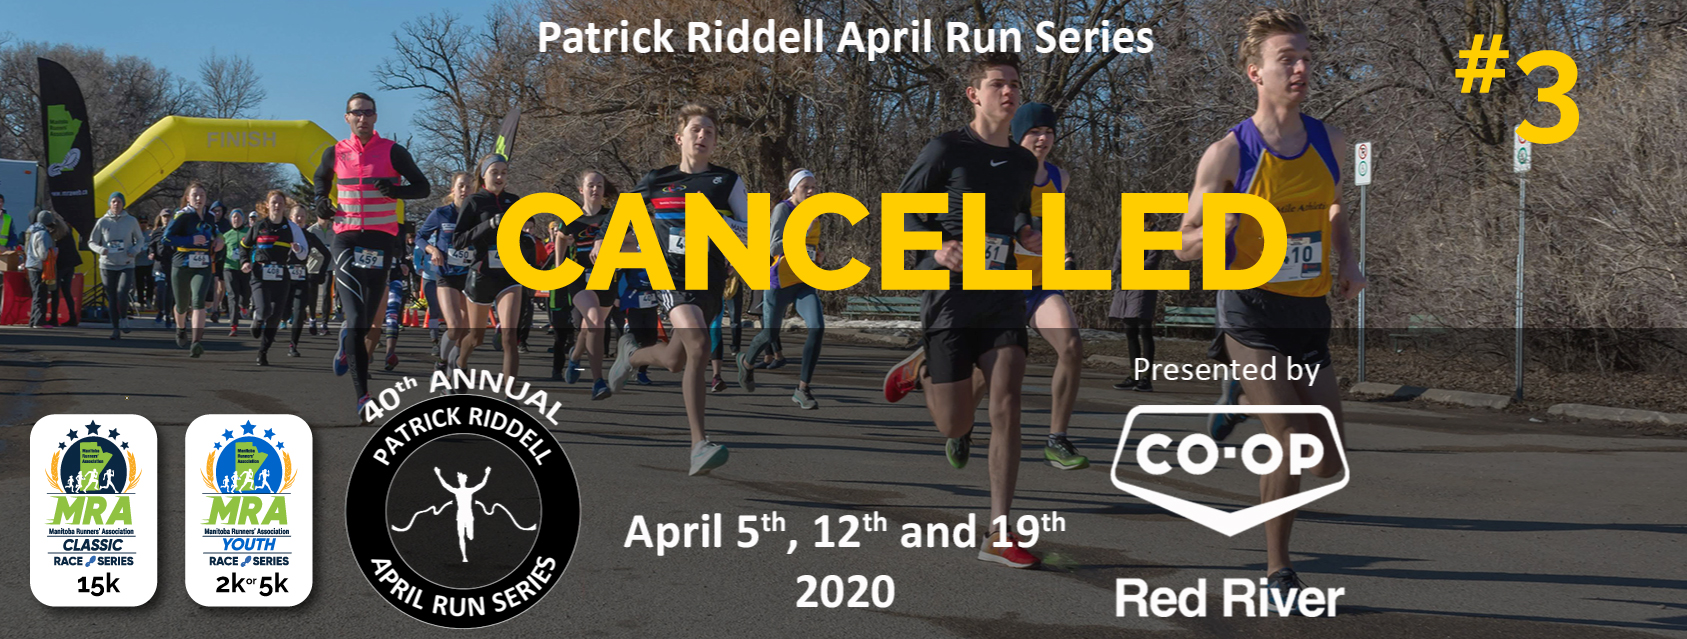 Patrick Riddell April Run Series #3 - Presented by Red River Co-op  **CANCELLED**